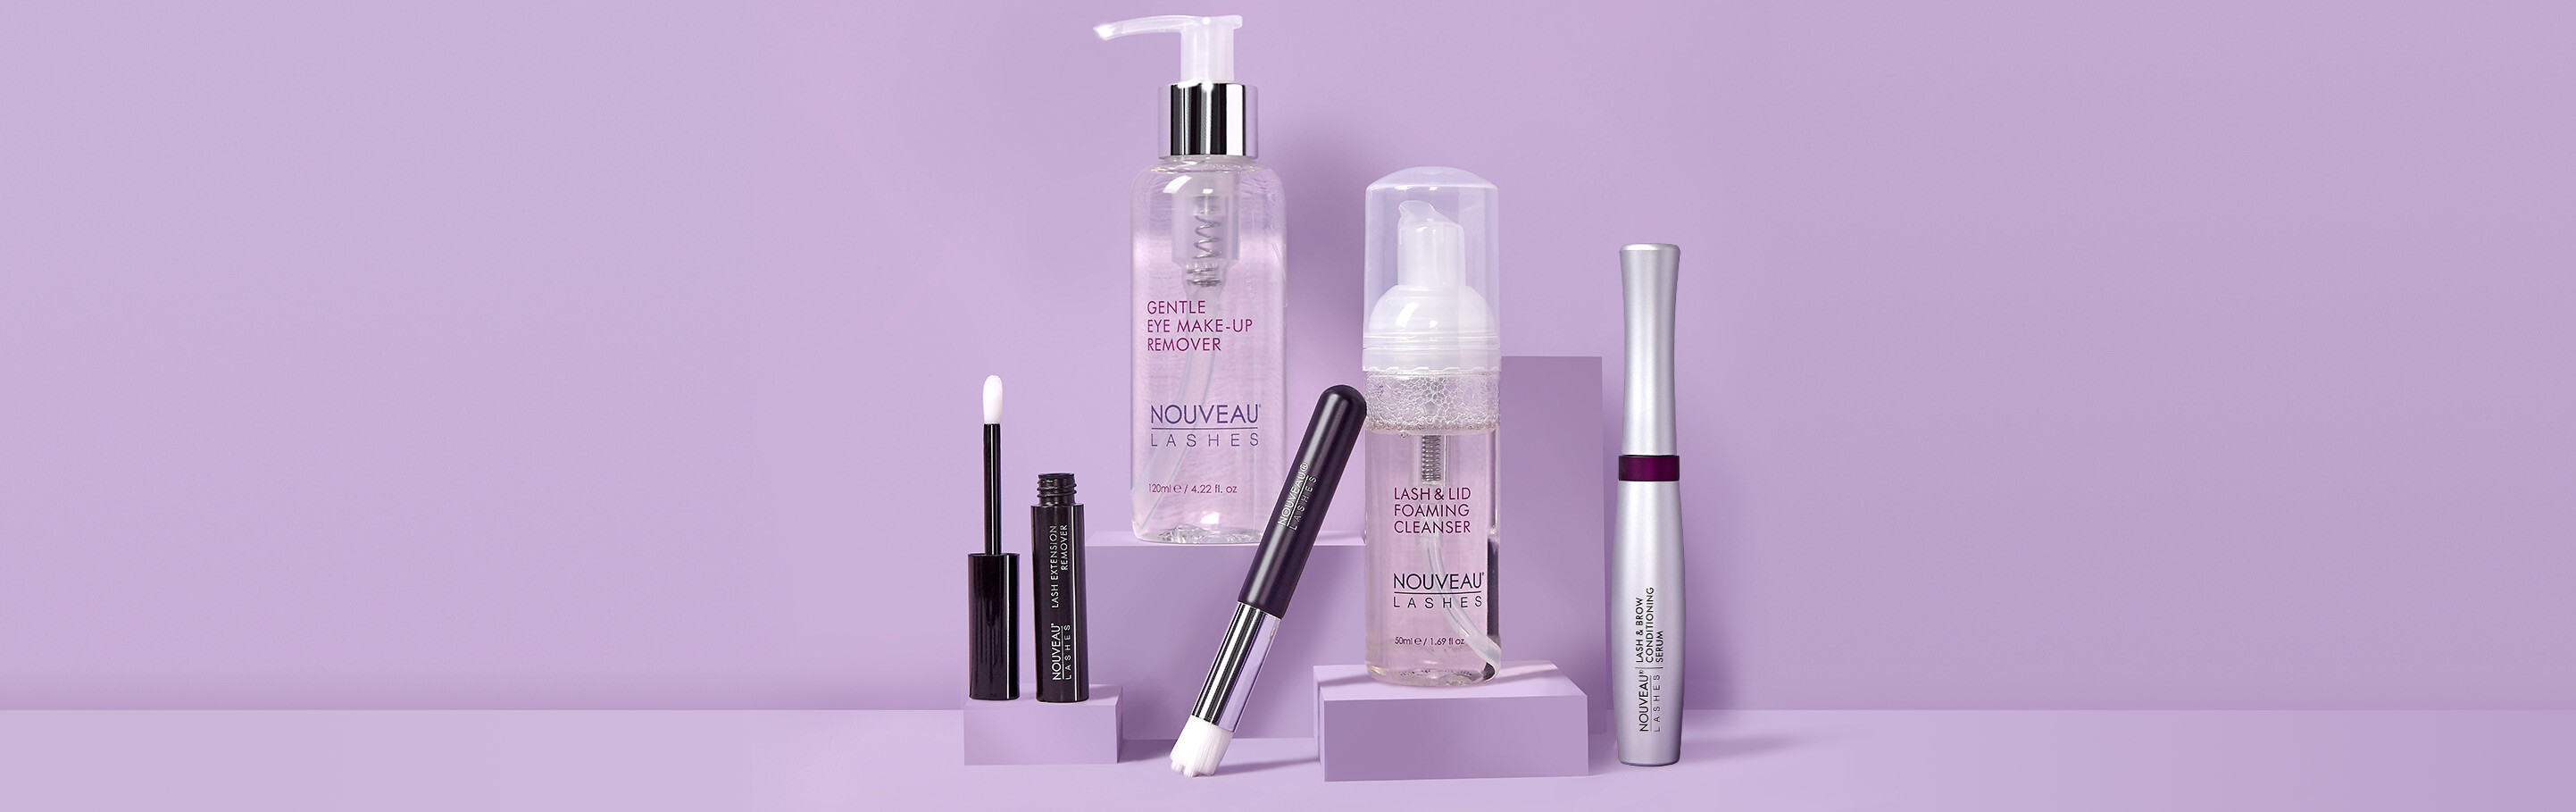 Introducing the Nouveau Lashes Lash and Lid Foaming Cleanser